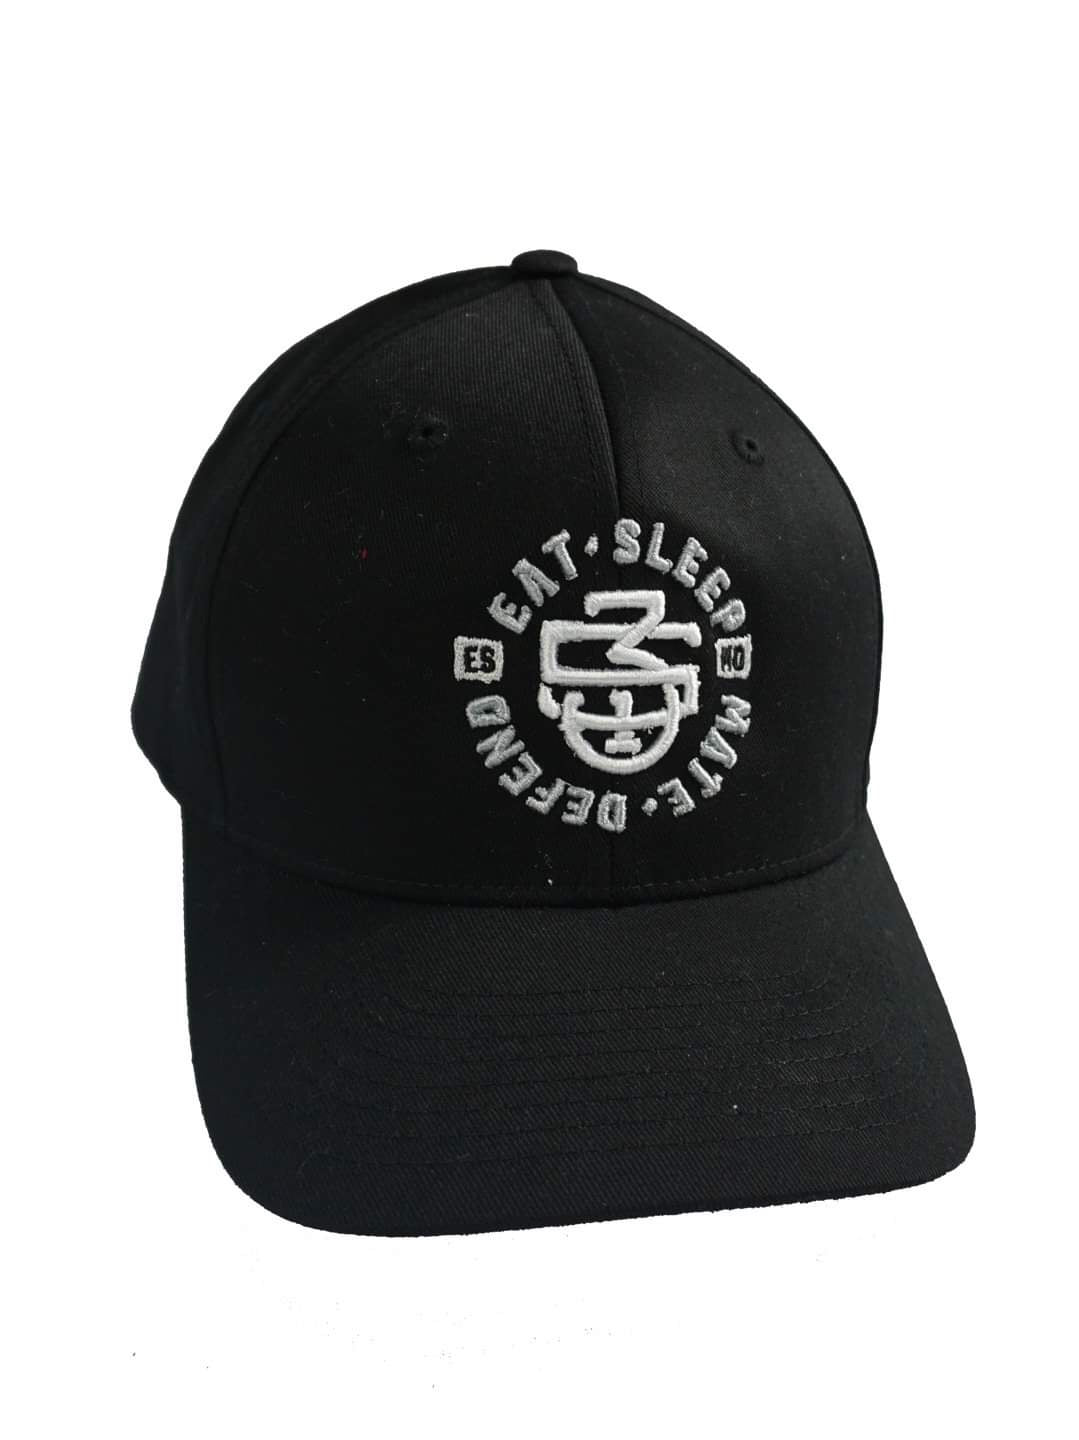 E.S.M.D. Fitted Hat